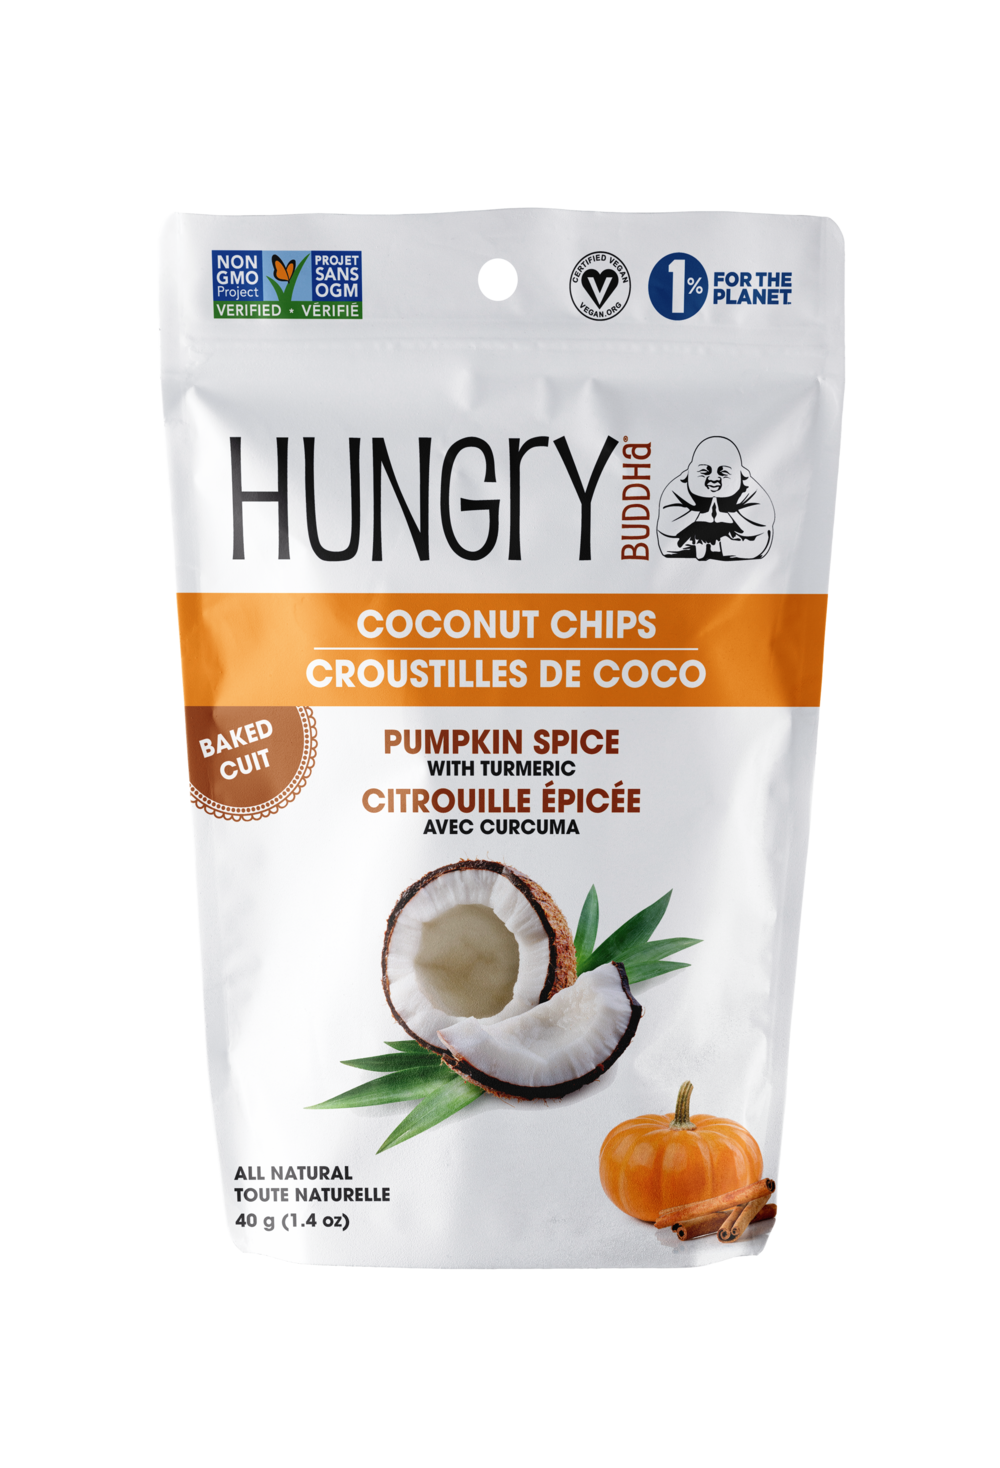 Hungry Buddha Pumpkin Spice Coconut Chips Front